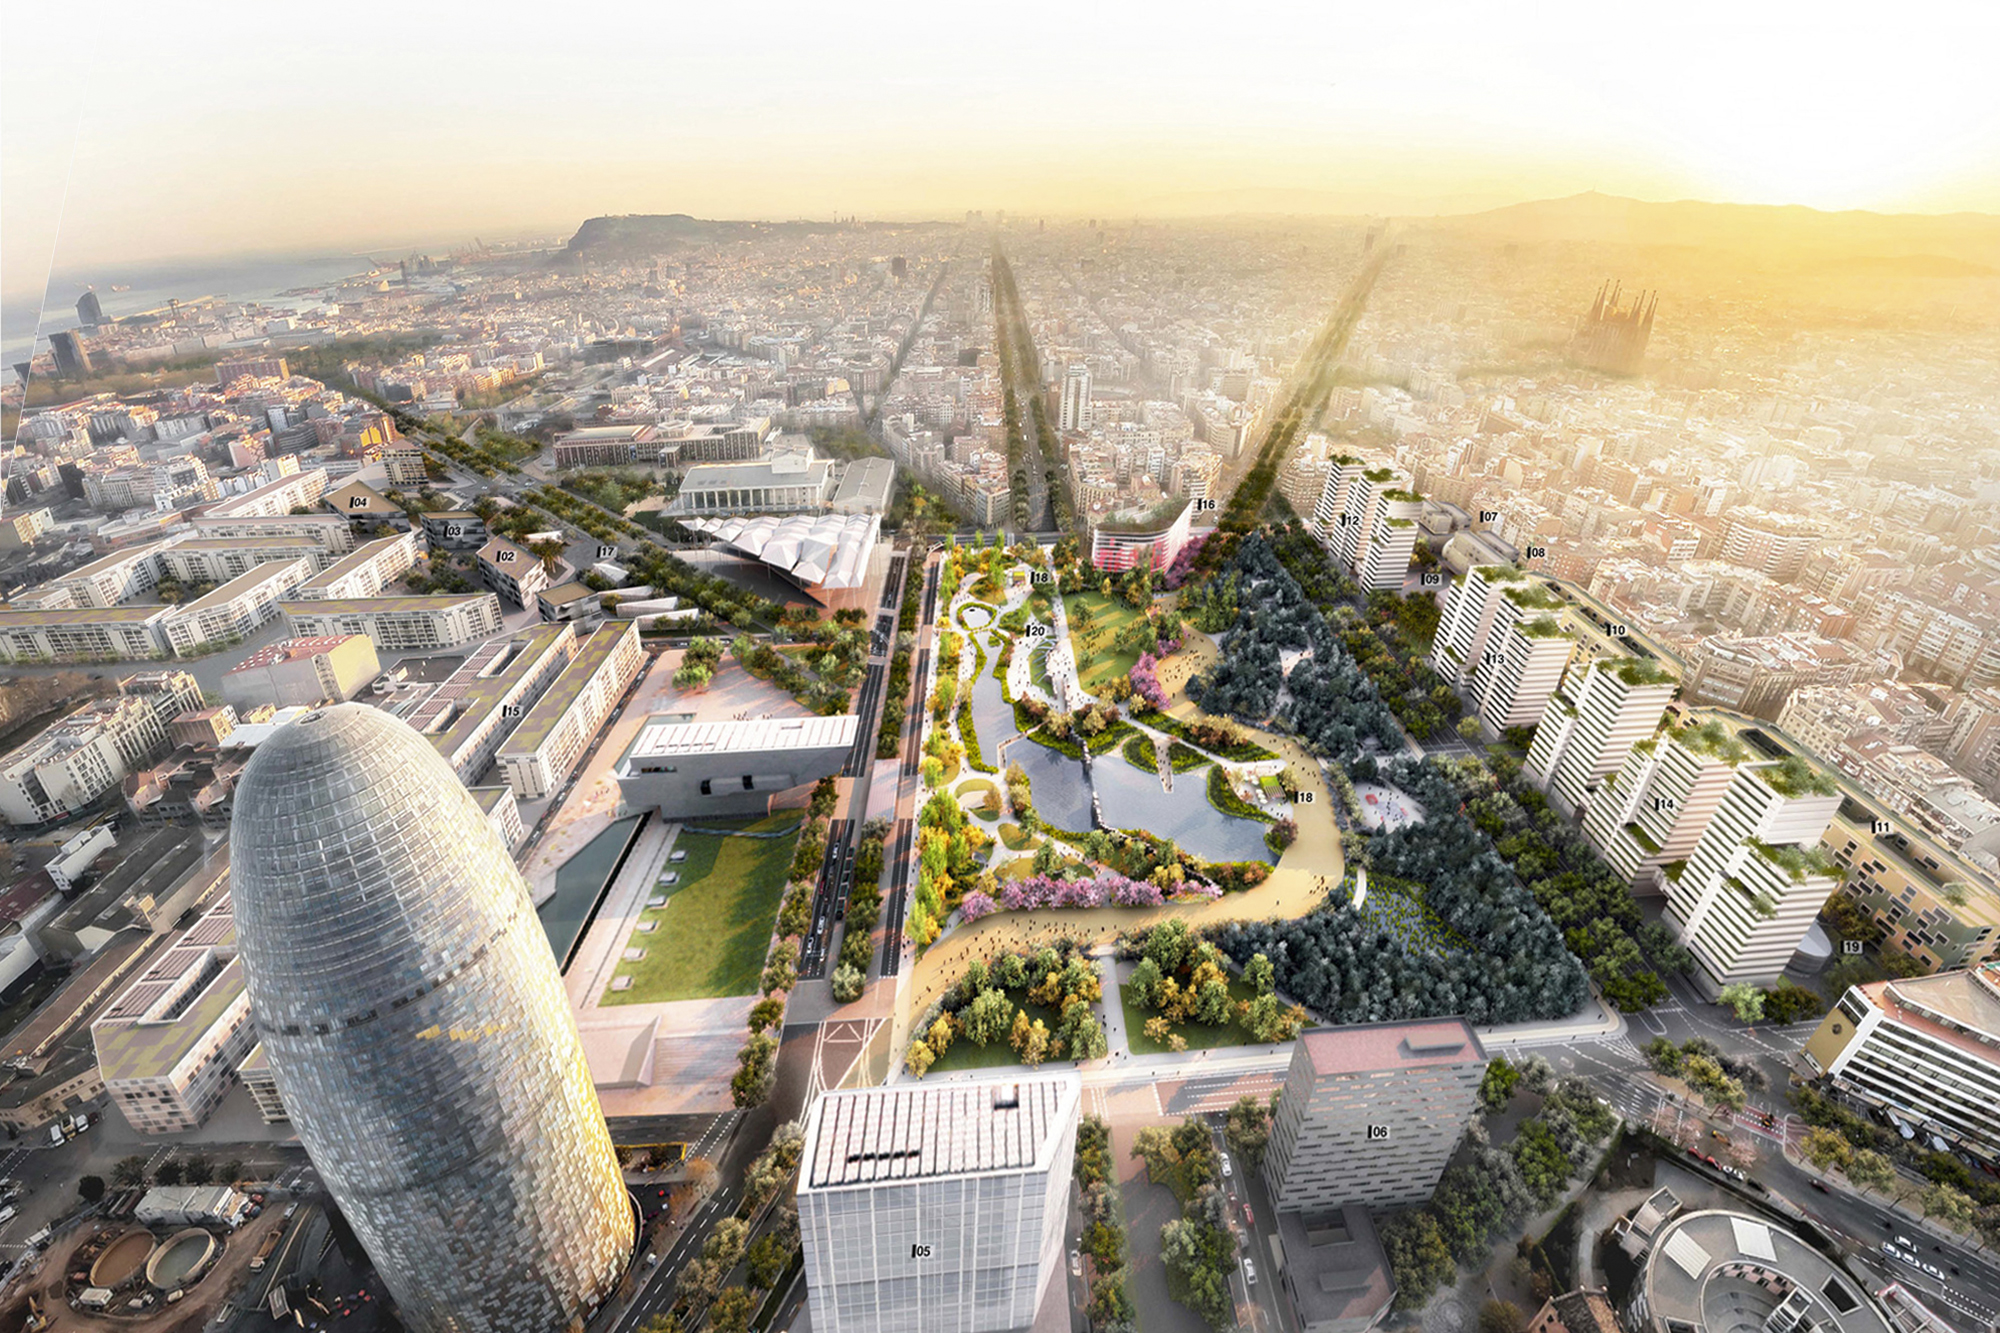 BARCELONA, THE 2º SMART CITY IN THE WORLD - The current reform of Glòries Square will convert the district in the new IT & Cultural nerve centre of Barcelona.It includes a new green rambla linking Avenida Meridiana to Glòries Square focusing on bicycles & pedestrians.